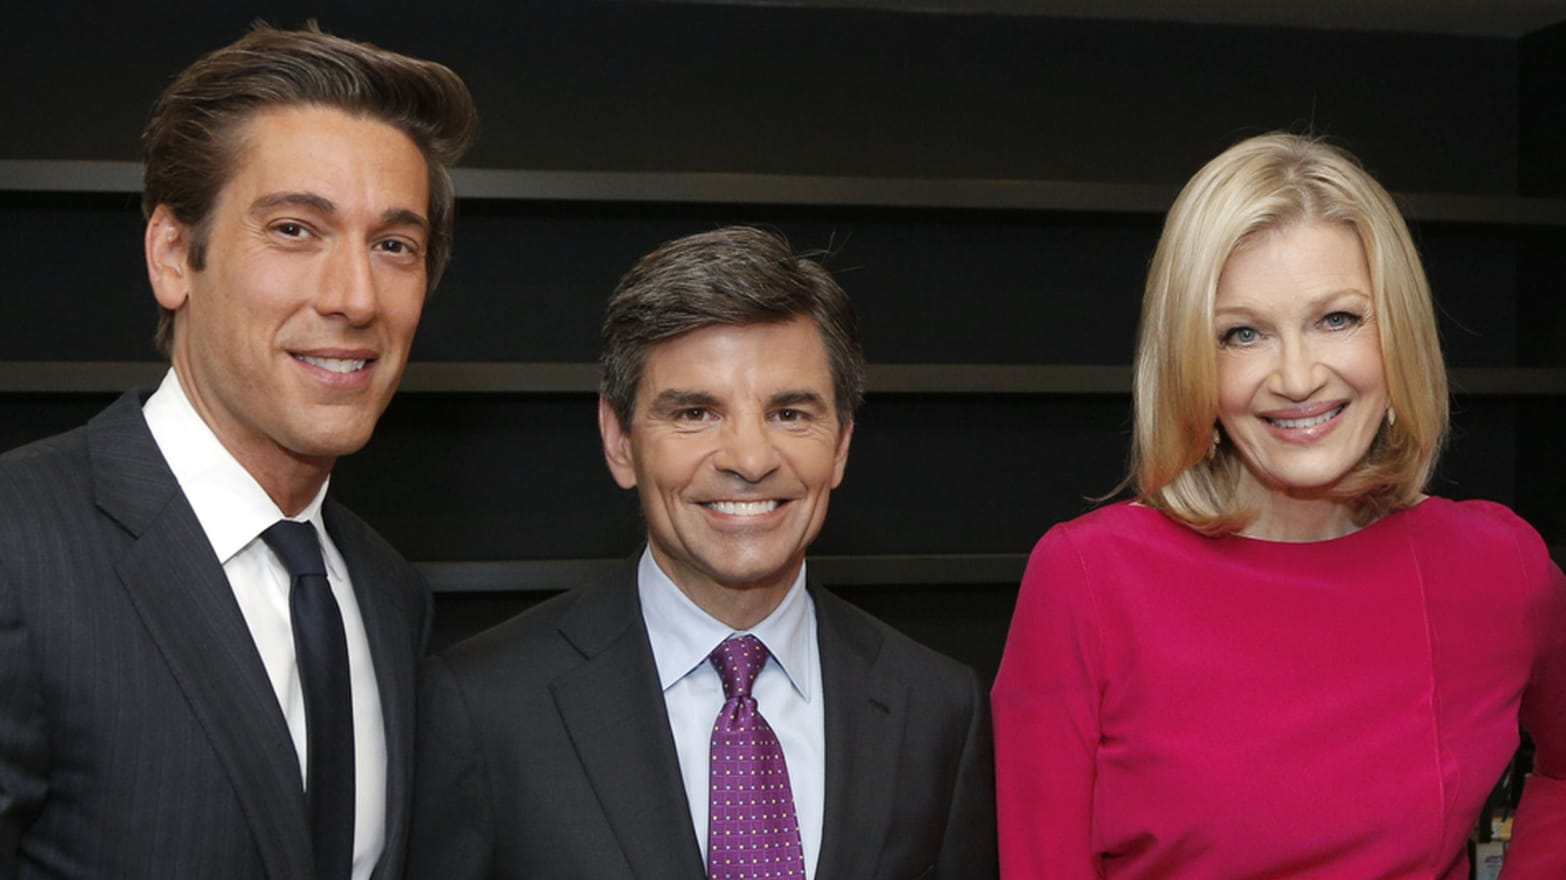 George Stephanopoulos Wins ABC's Chief Anchor Crown—Where